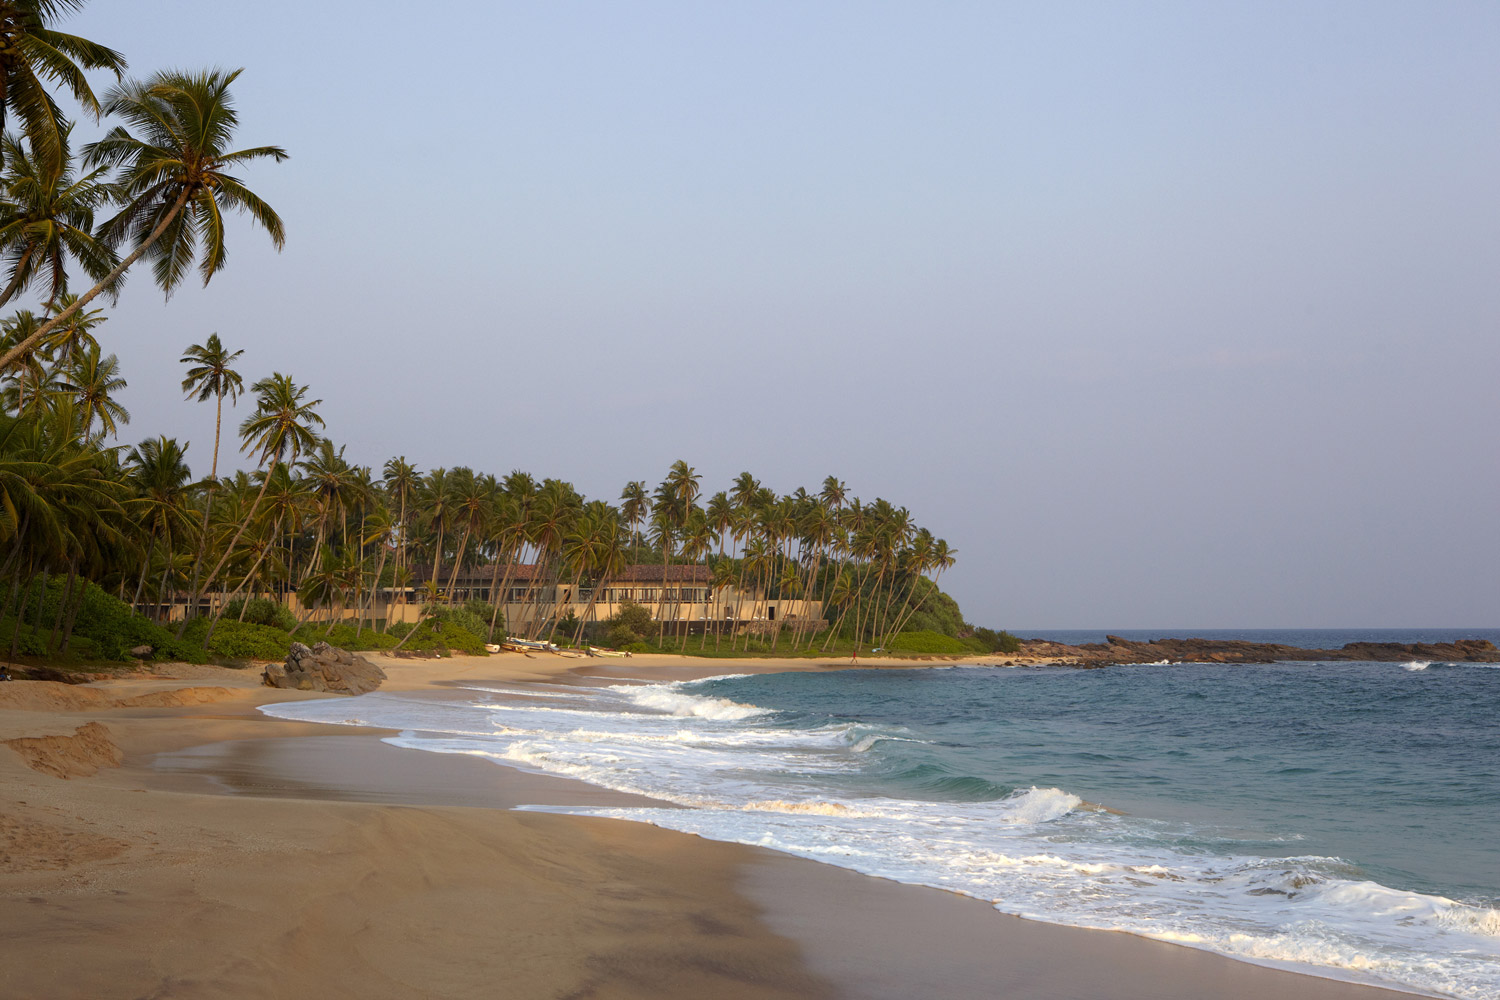 RS5_Amanwella---View-from-the-Beach-hpr